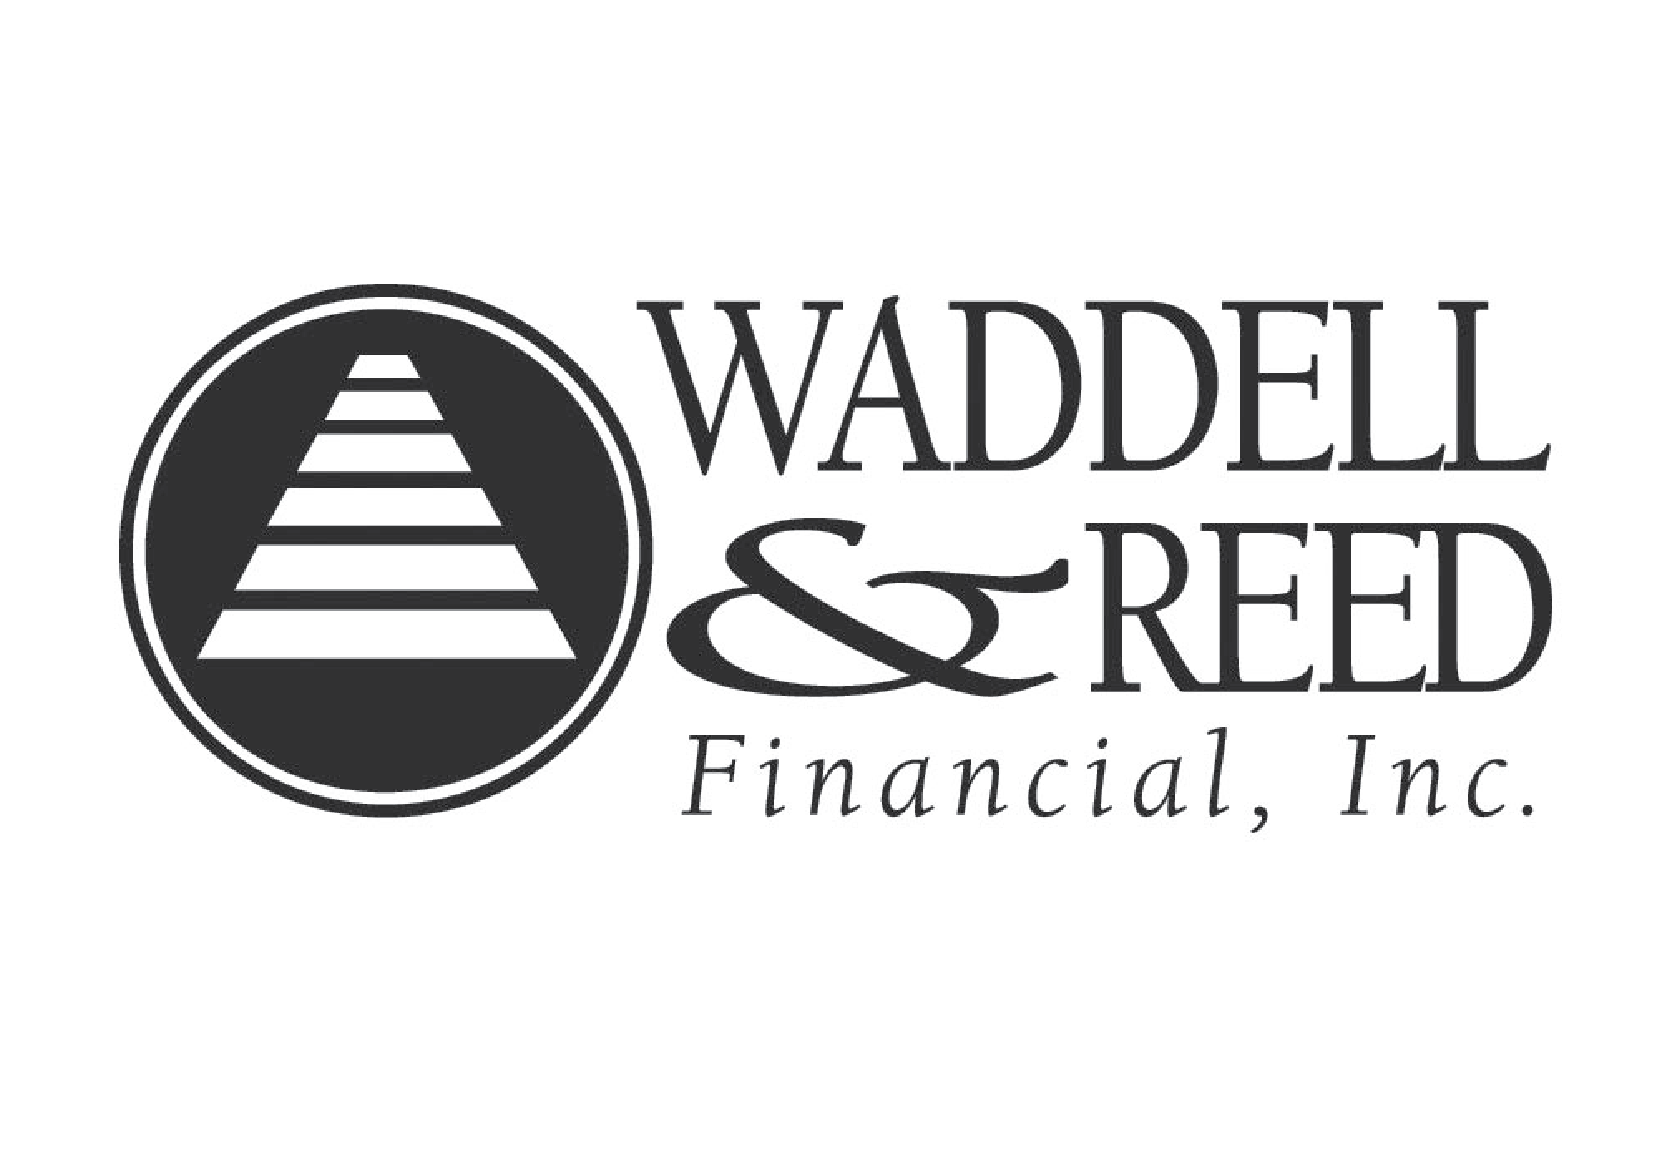 Waddell & Reed, Inc.